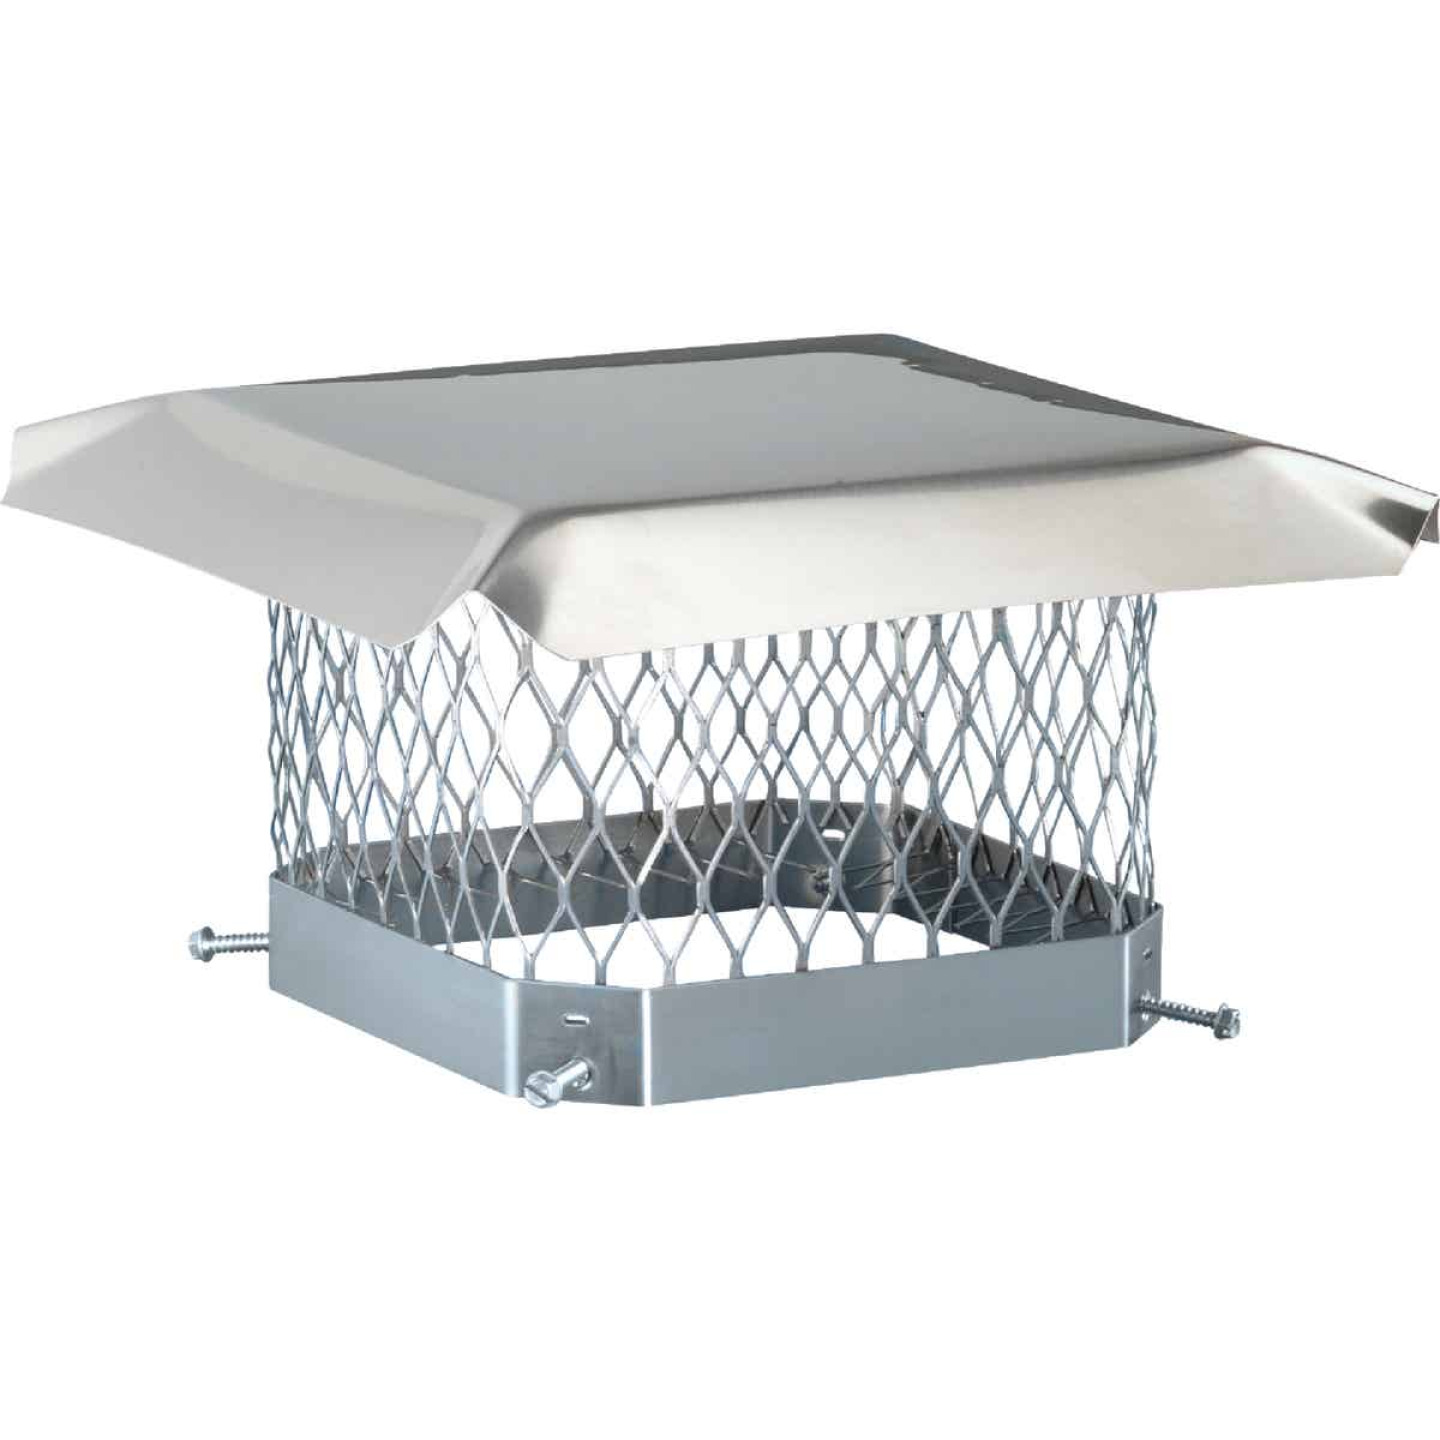 Shelter 9 In. x 13 In. Stainless Steel Single Flue Chimney Cap Image 1